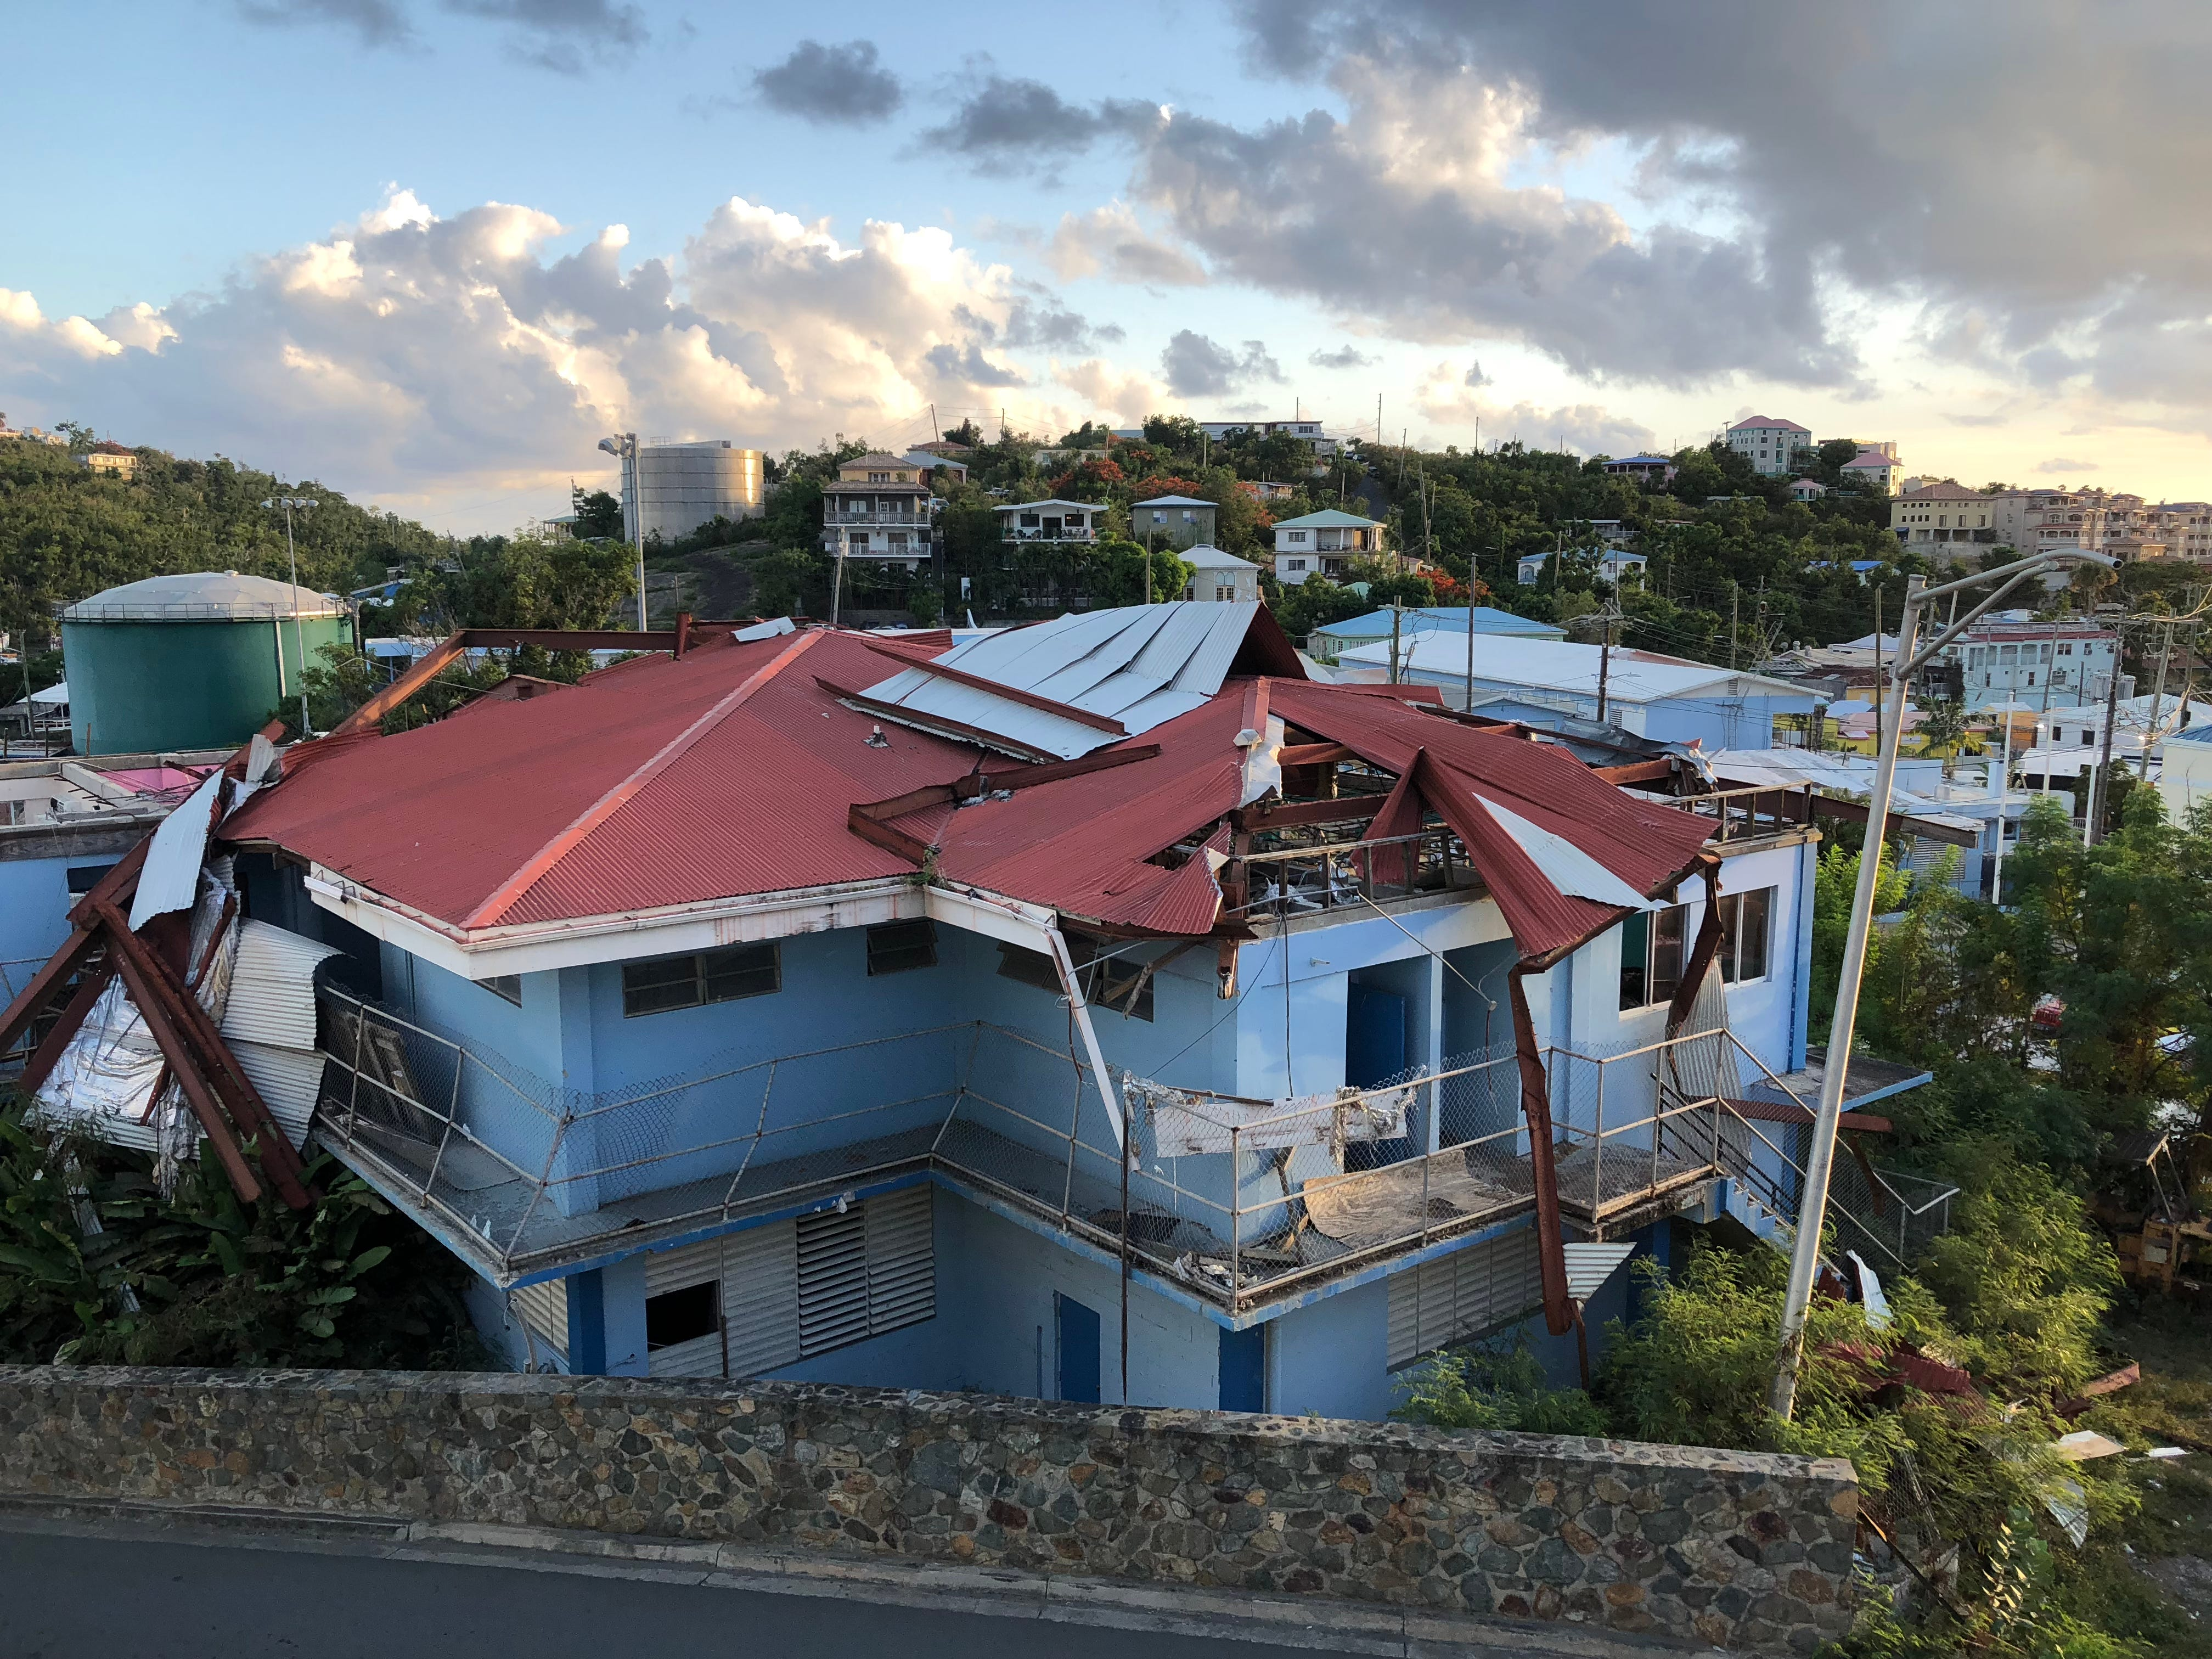 Many buildings around the U.S. Virgin Islands damaged from Hurricane Irma last year have yet to be repaired, such as this one in St. John.